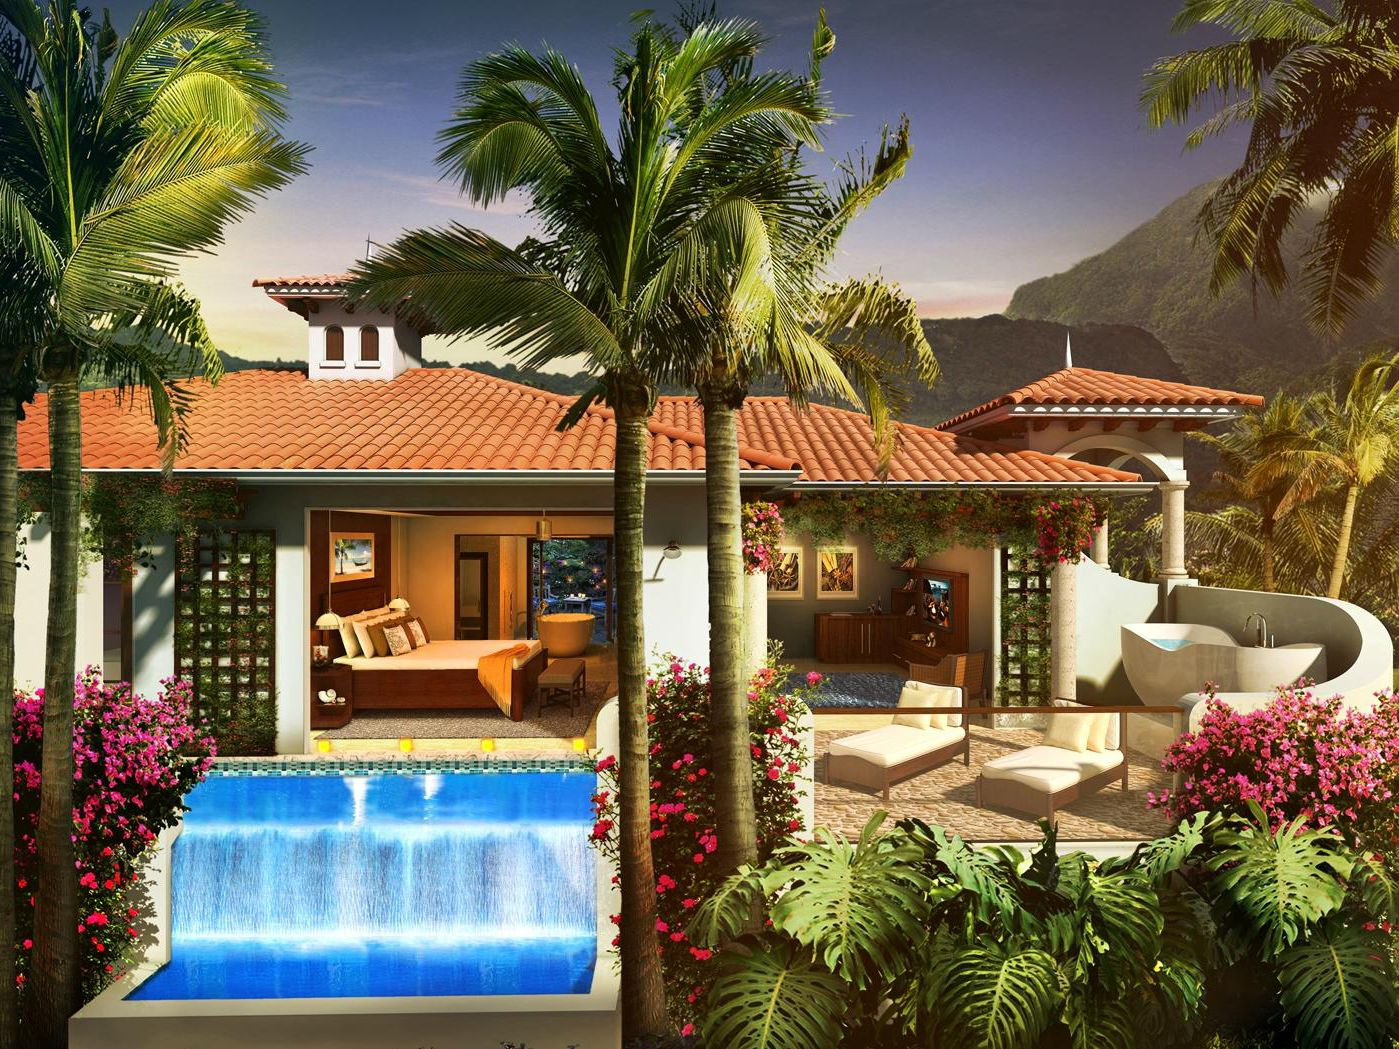 10 ways to go tropical for a relaxing and trendy home office.htm the 9 best sandals resorts of 2020  the 9 best sandals resorts of 2020